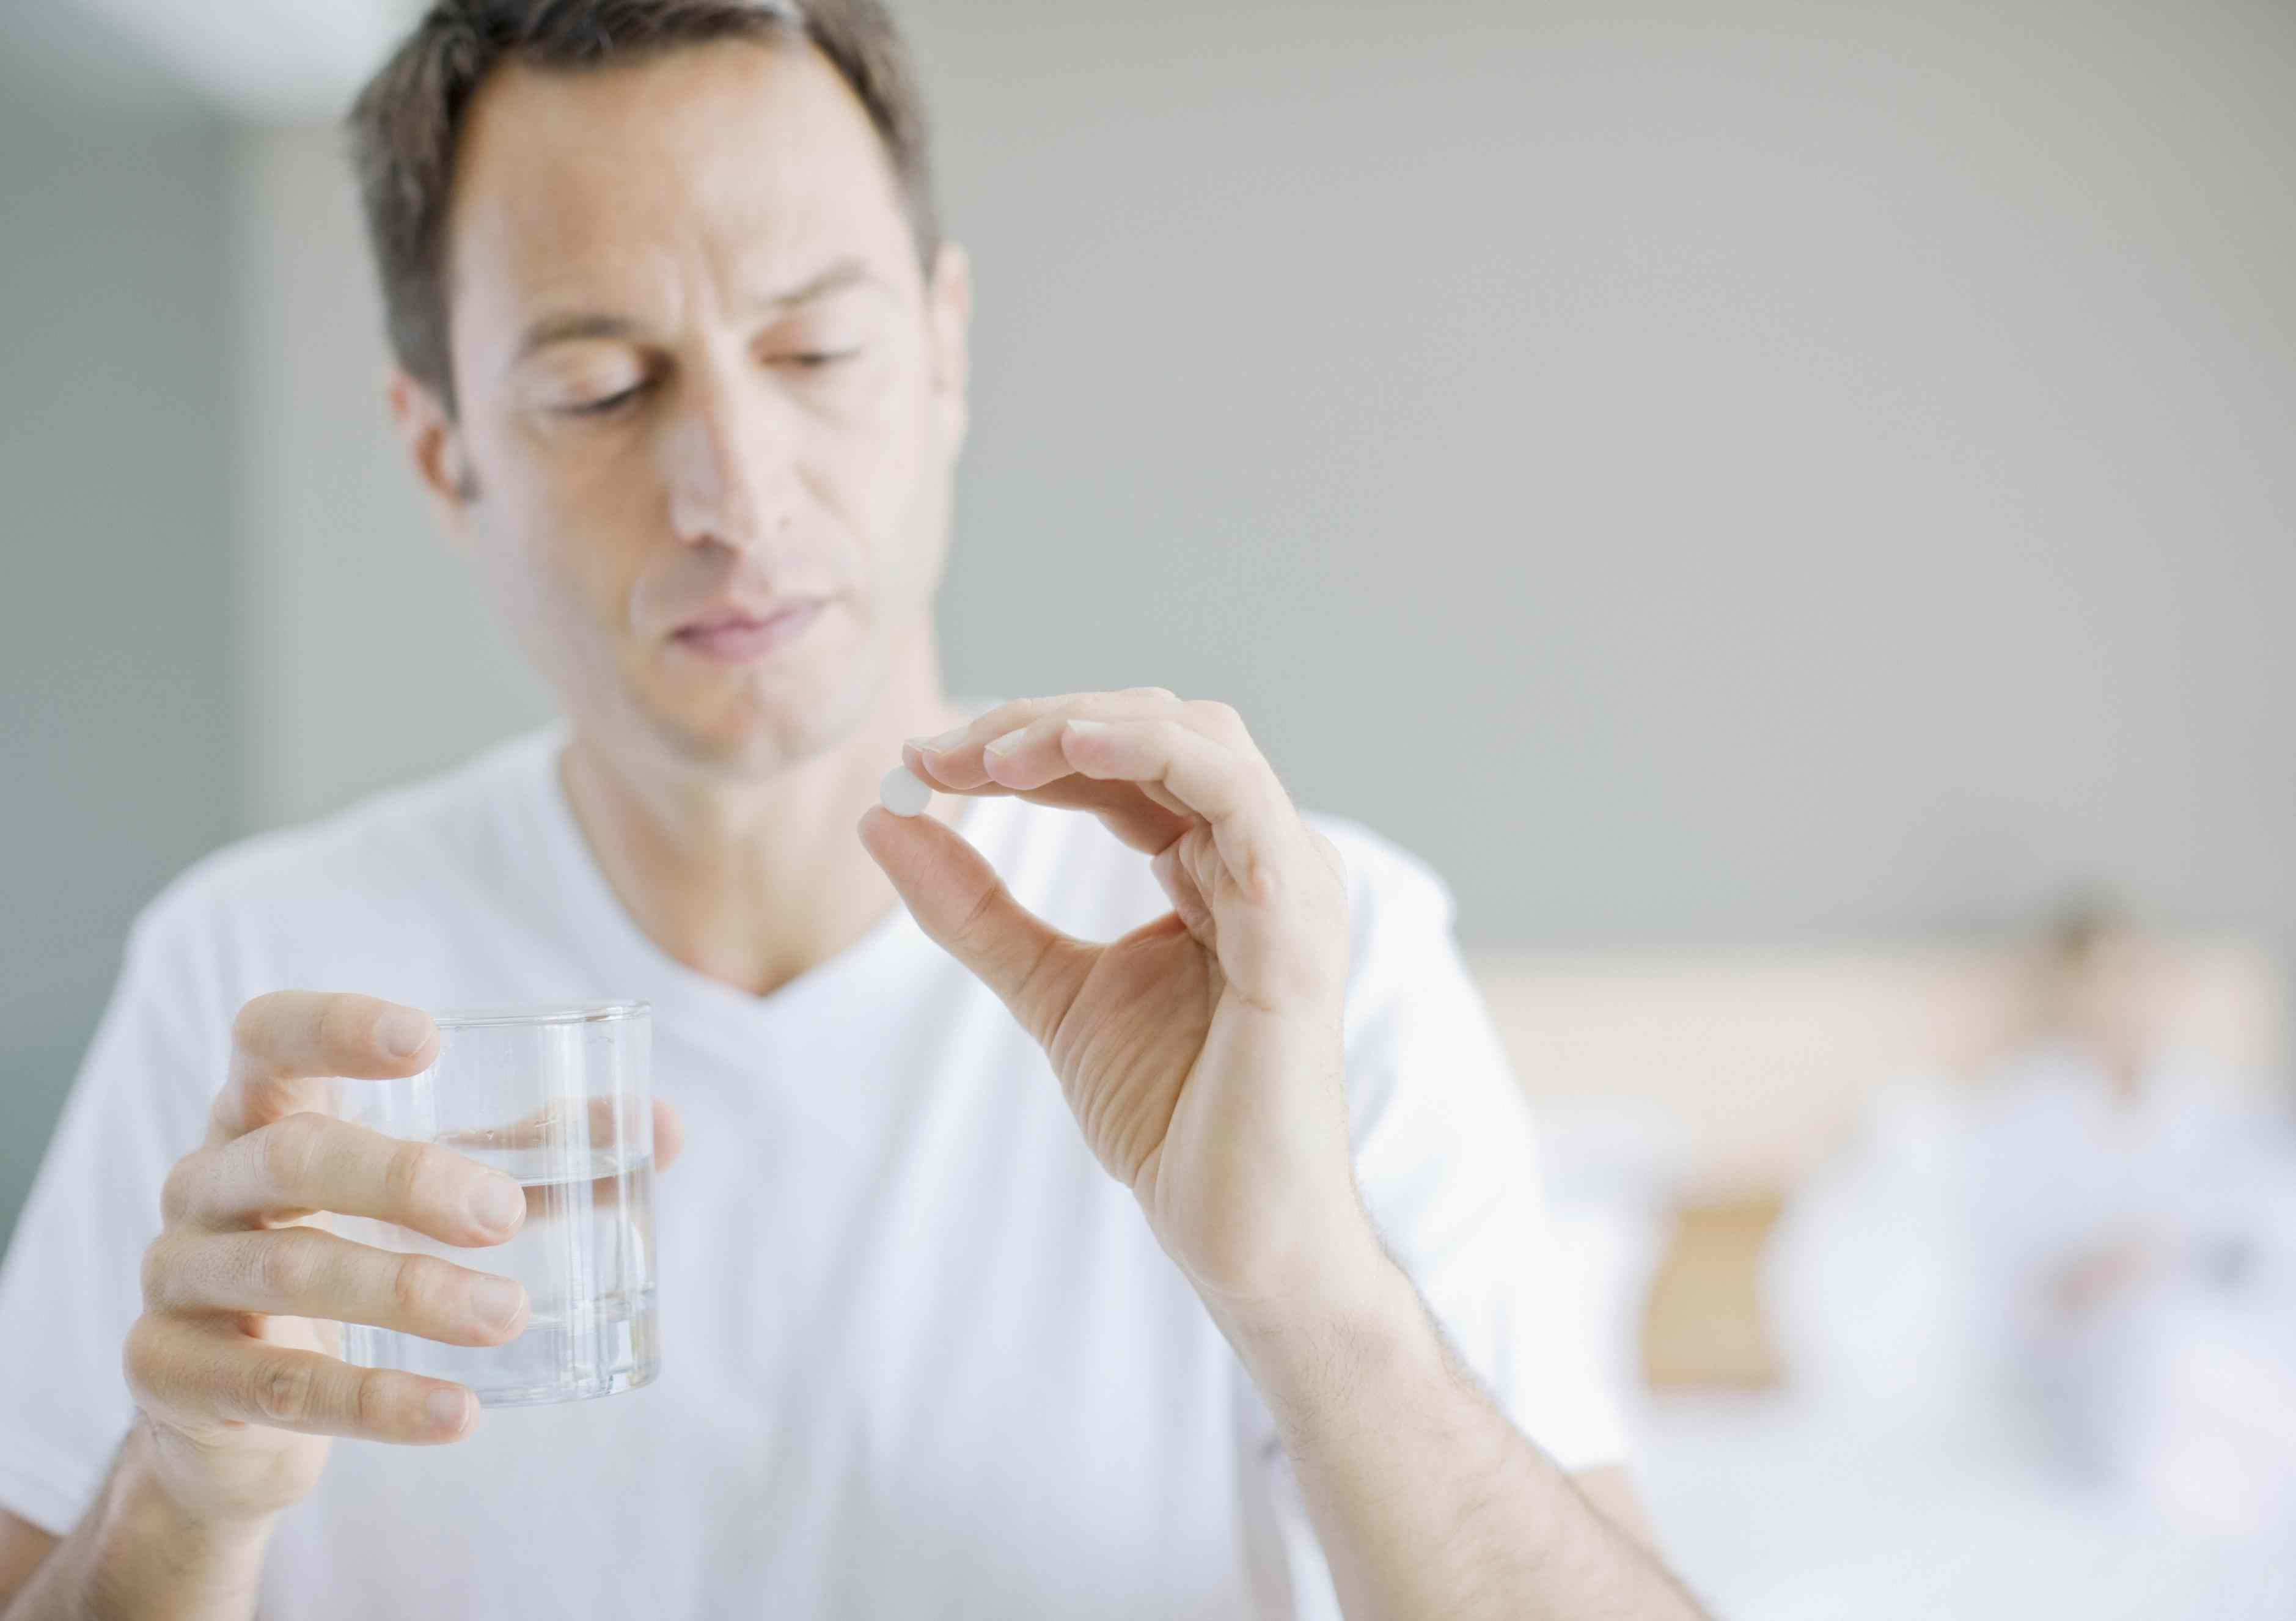 Man holding a pill and a glass of water